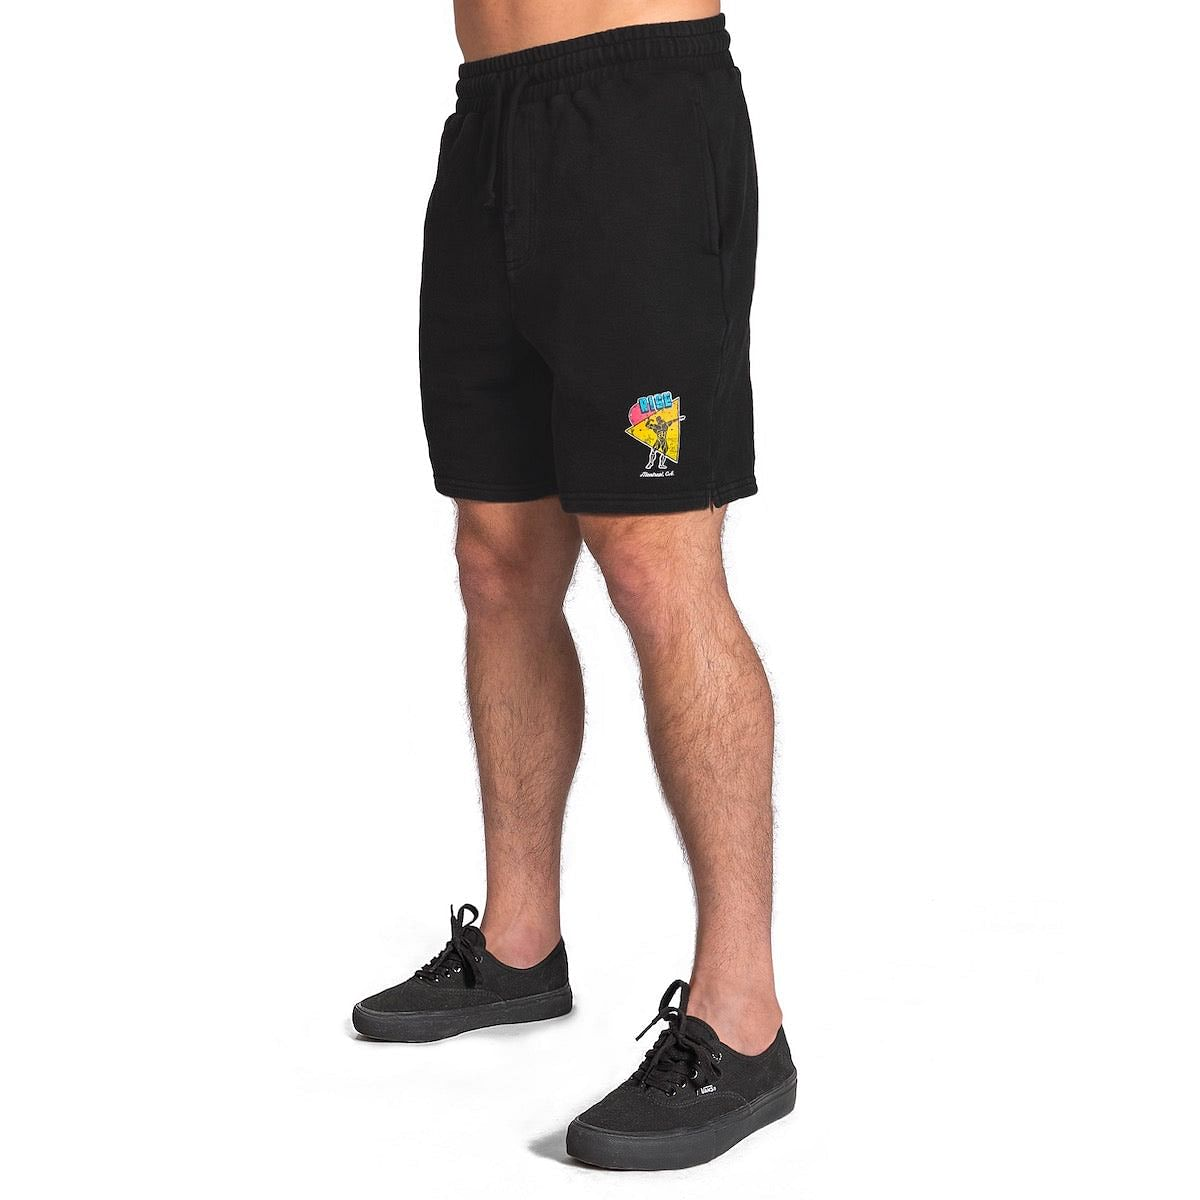 "Retro Shorts 7"" - Black"